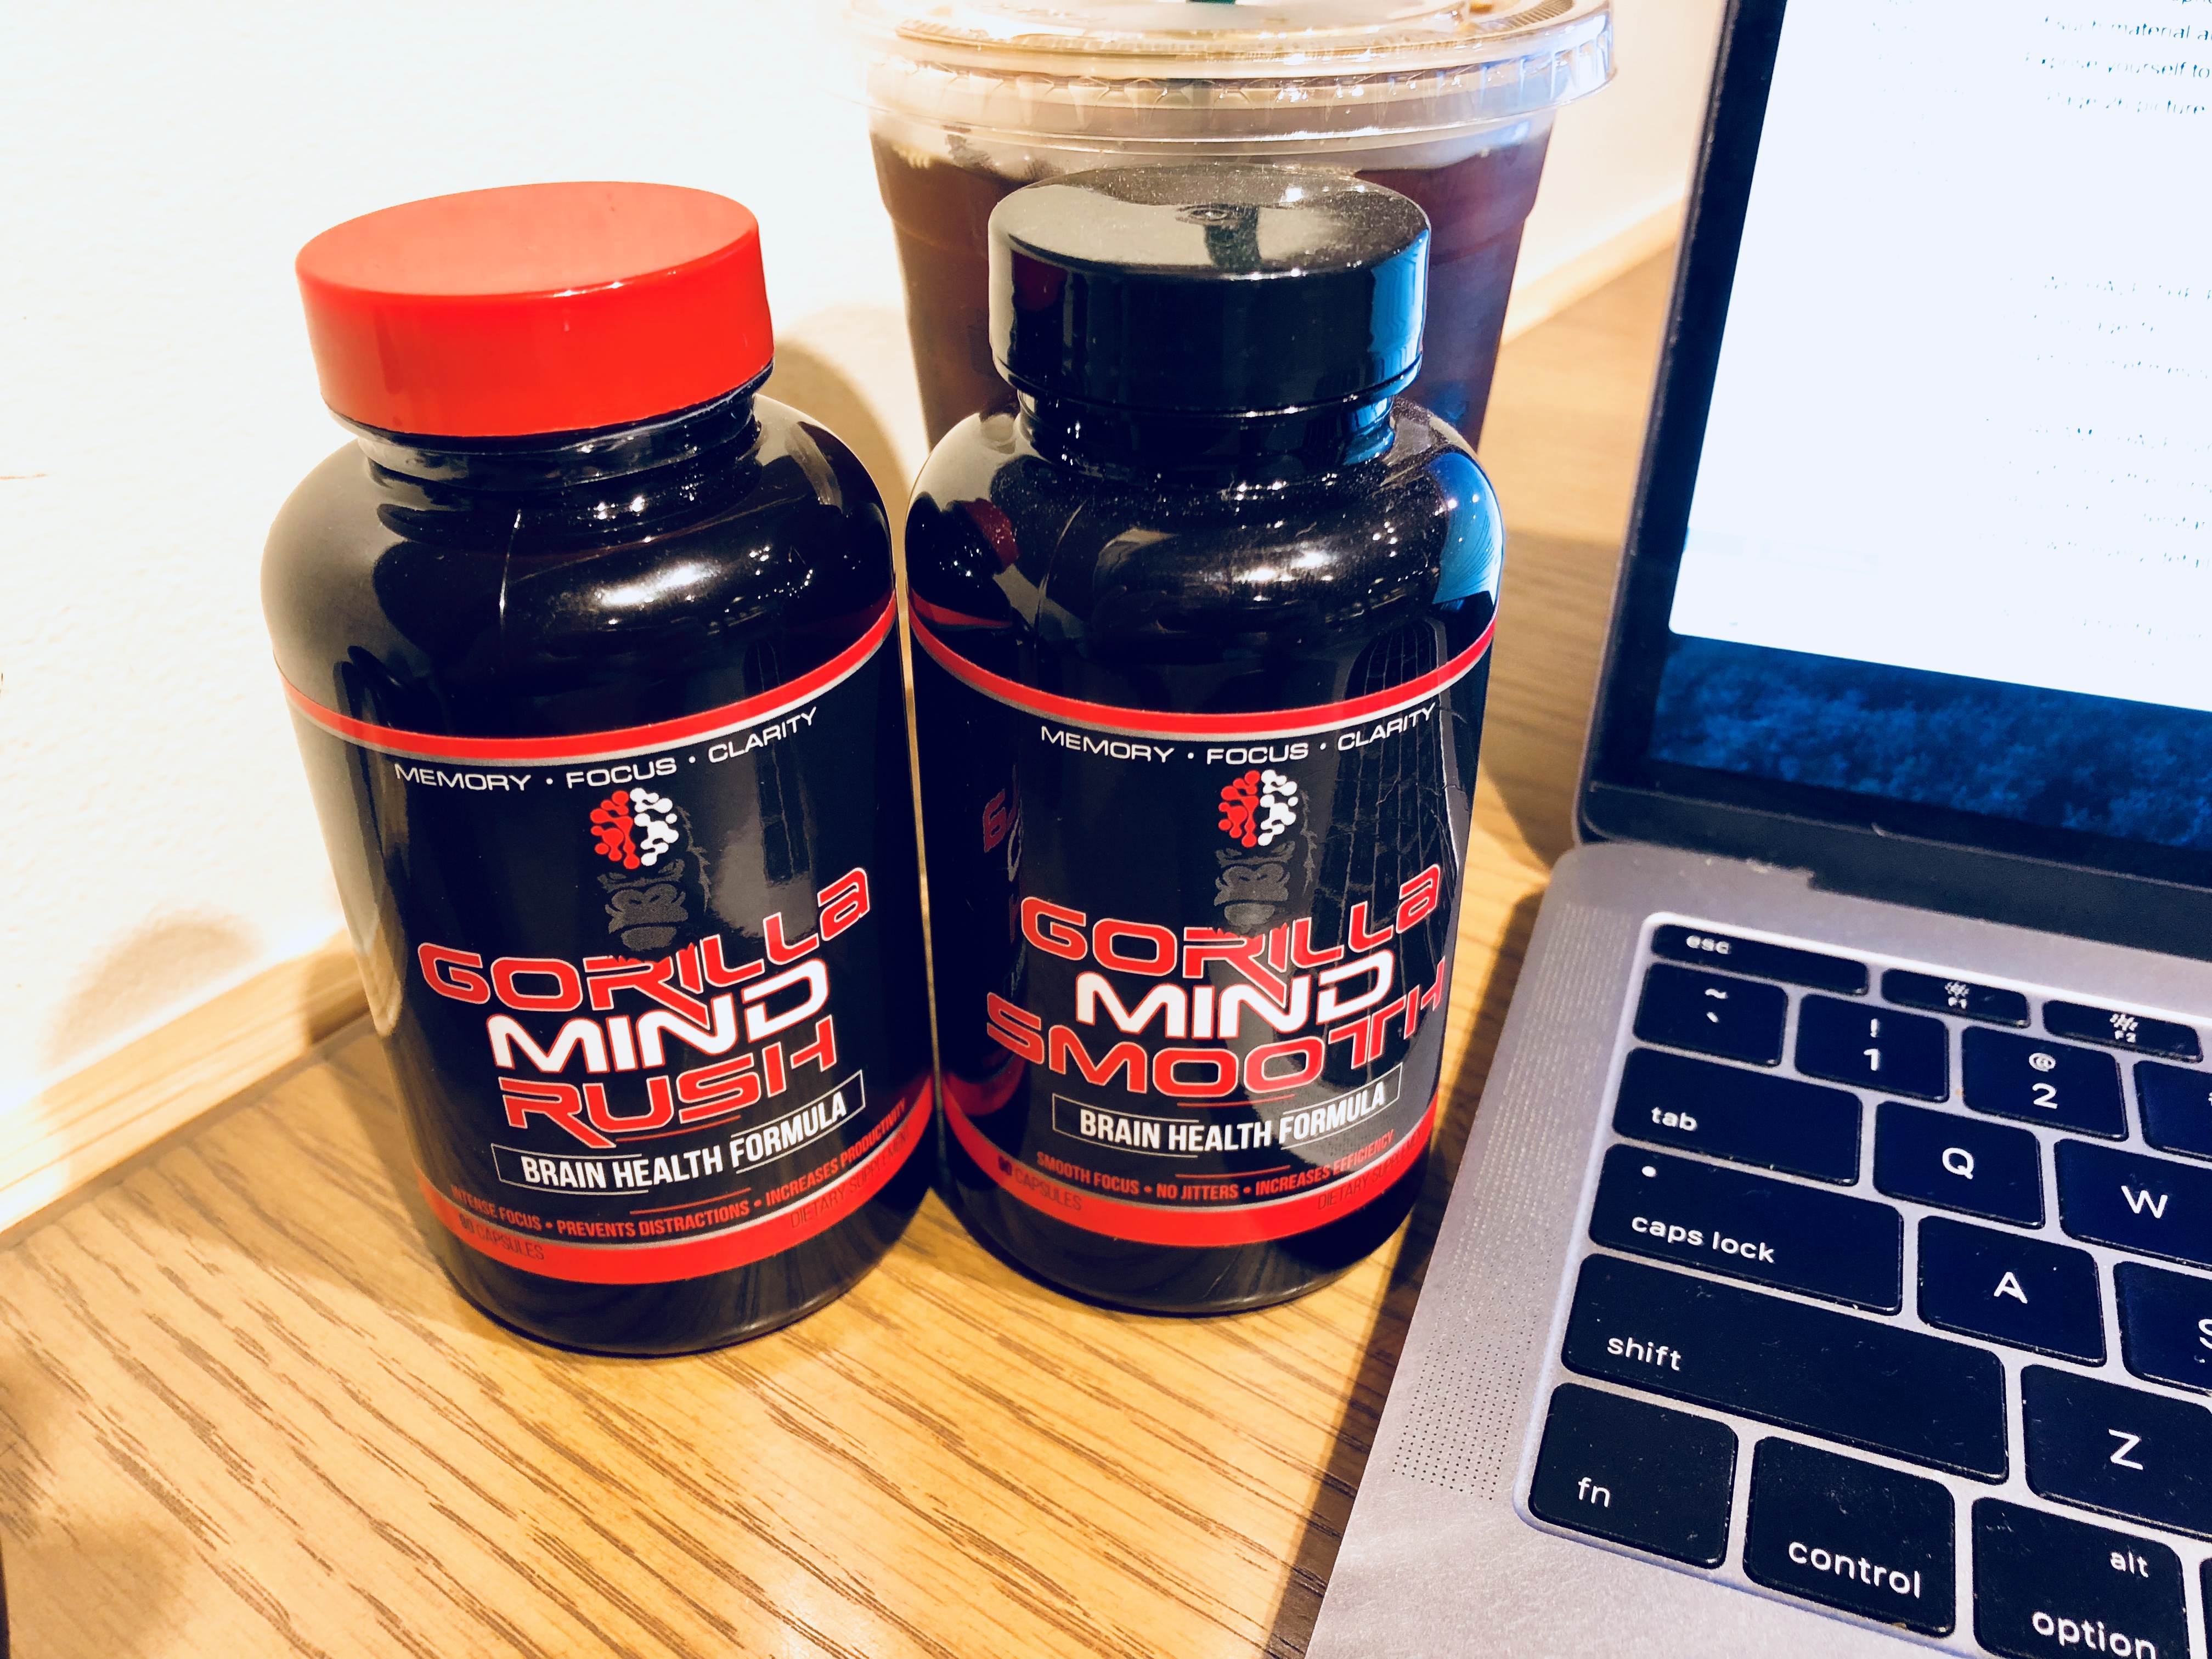 Gorilla Mind Rush and Smooth Nootropic Supplement Review